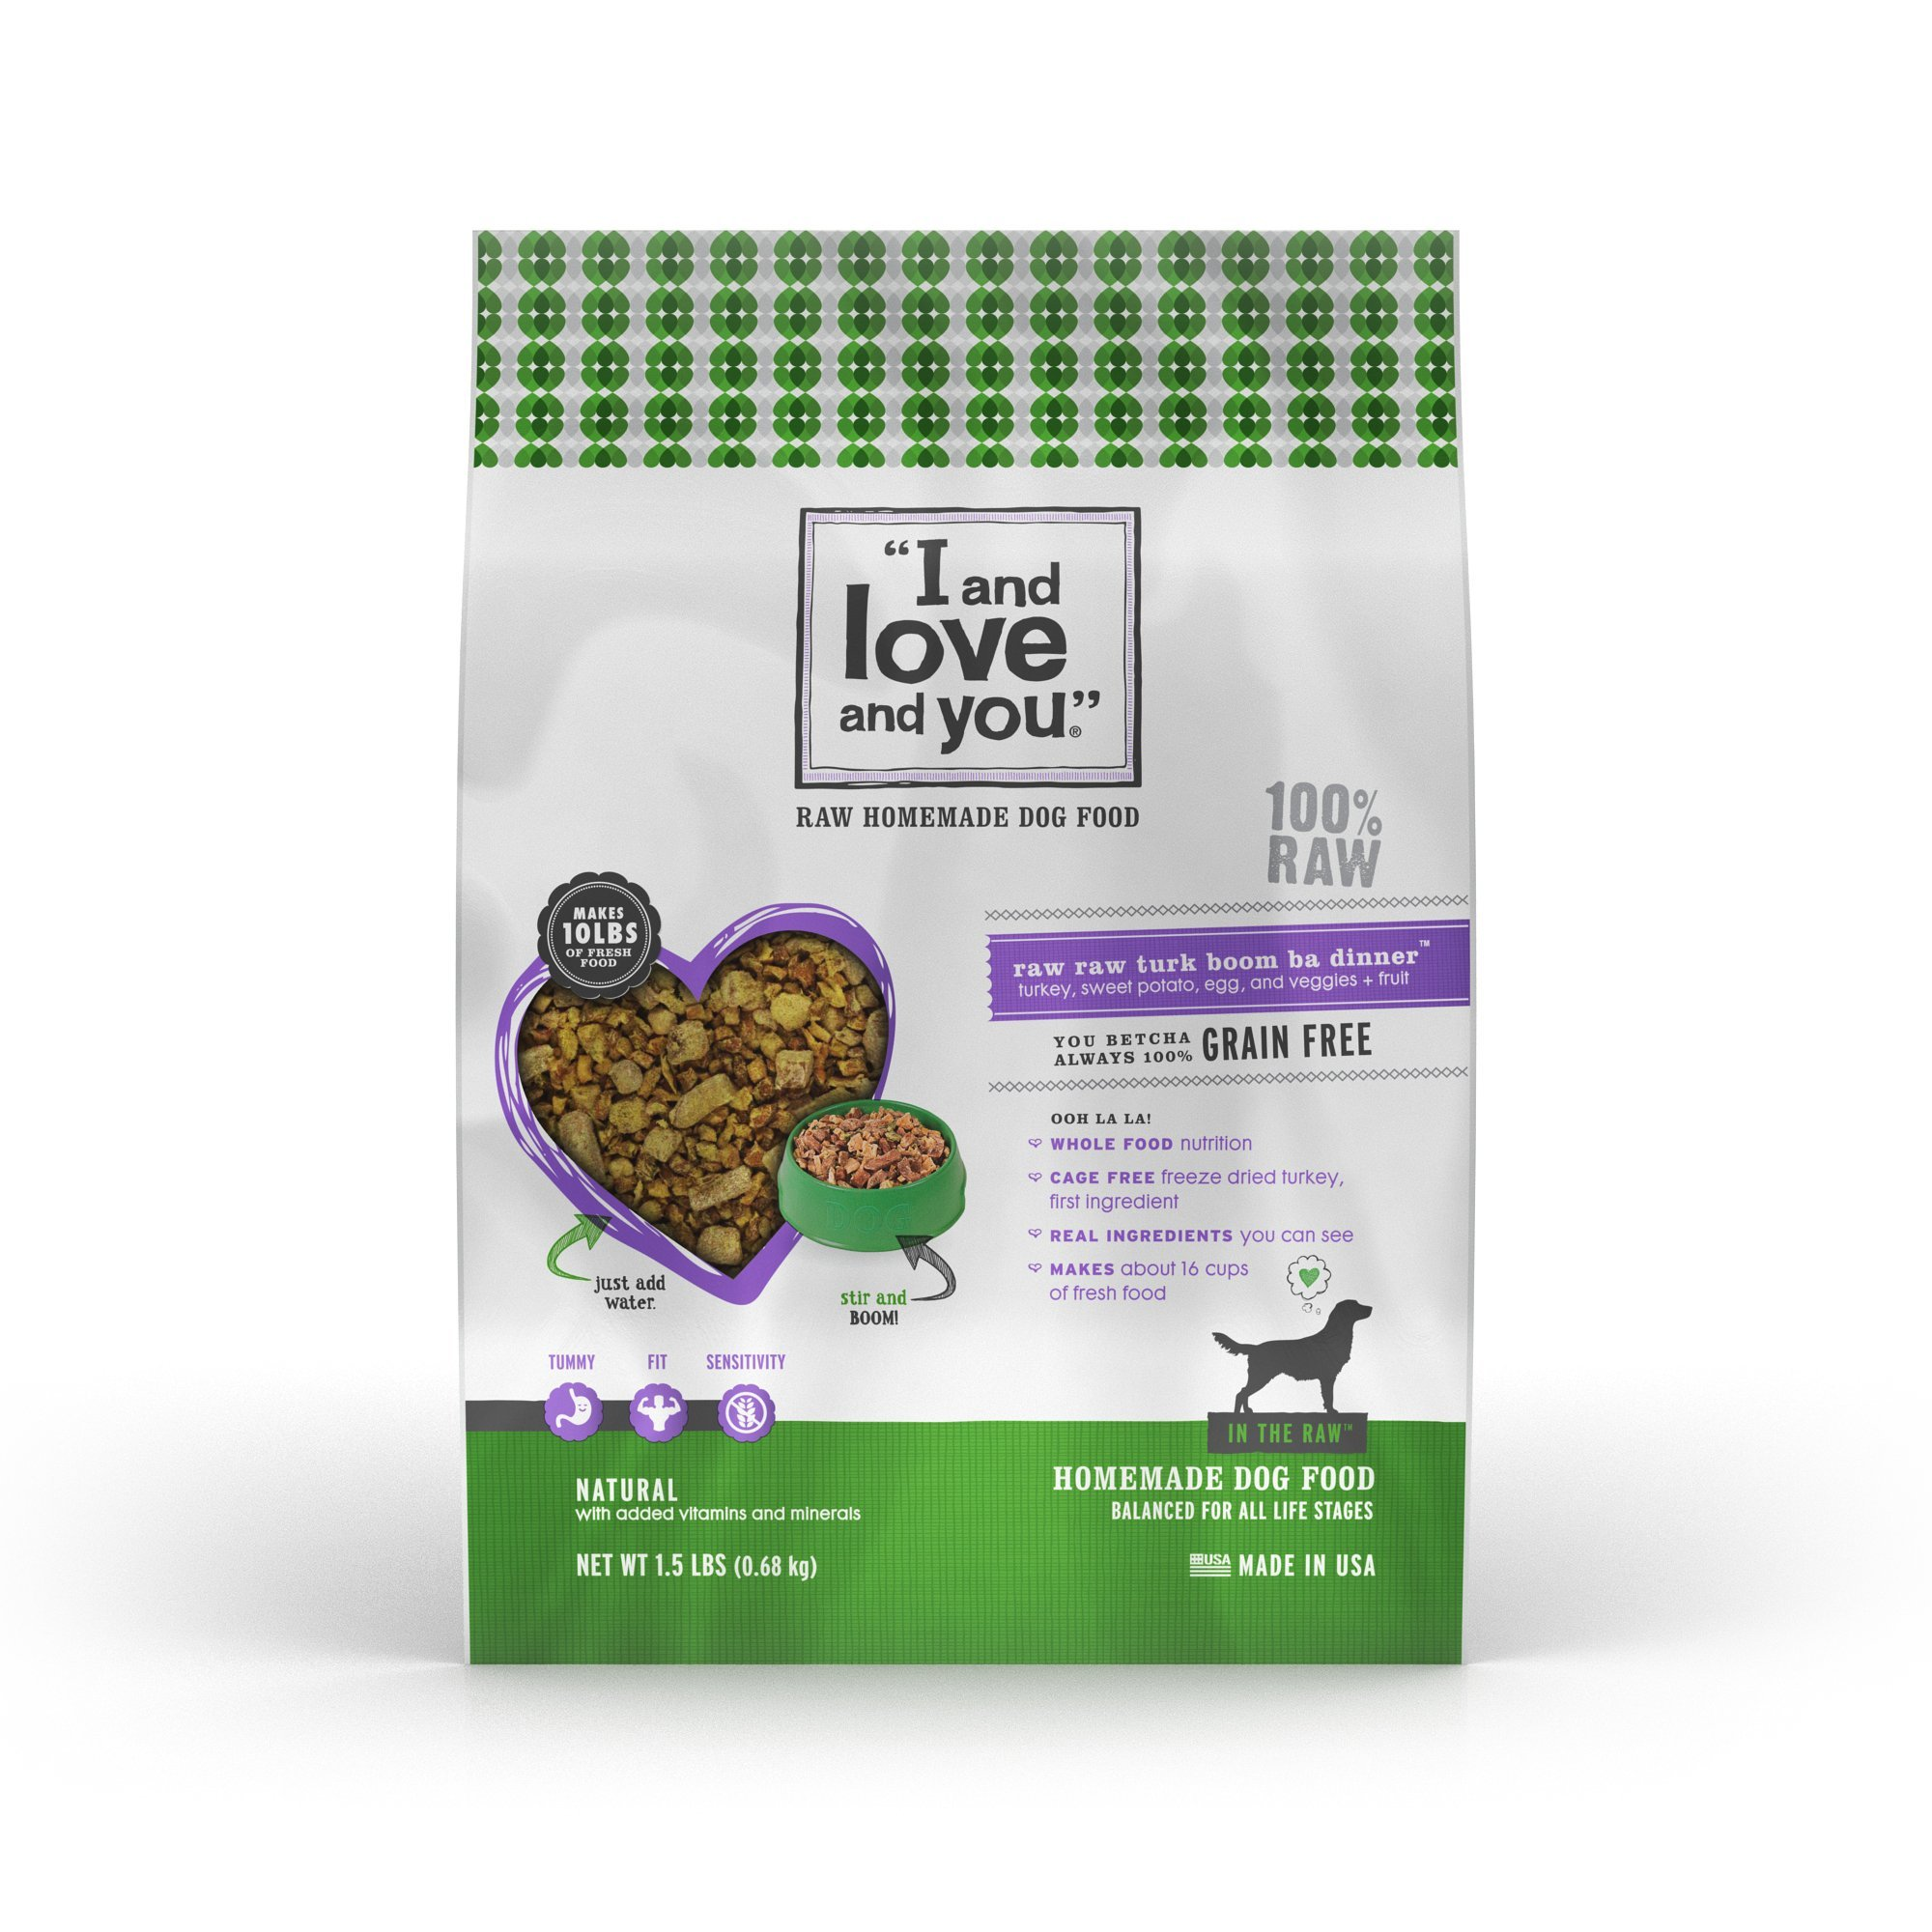 """I and love and you"""" In the Raw 'Raw Raw Turk Boom Ba' Homemade Freeze Dried, Grain Free Dehydrated Dog Food, 5.5 LB"""